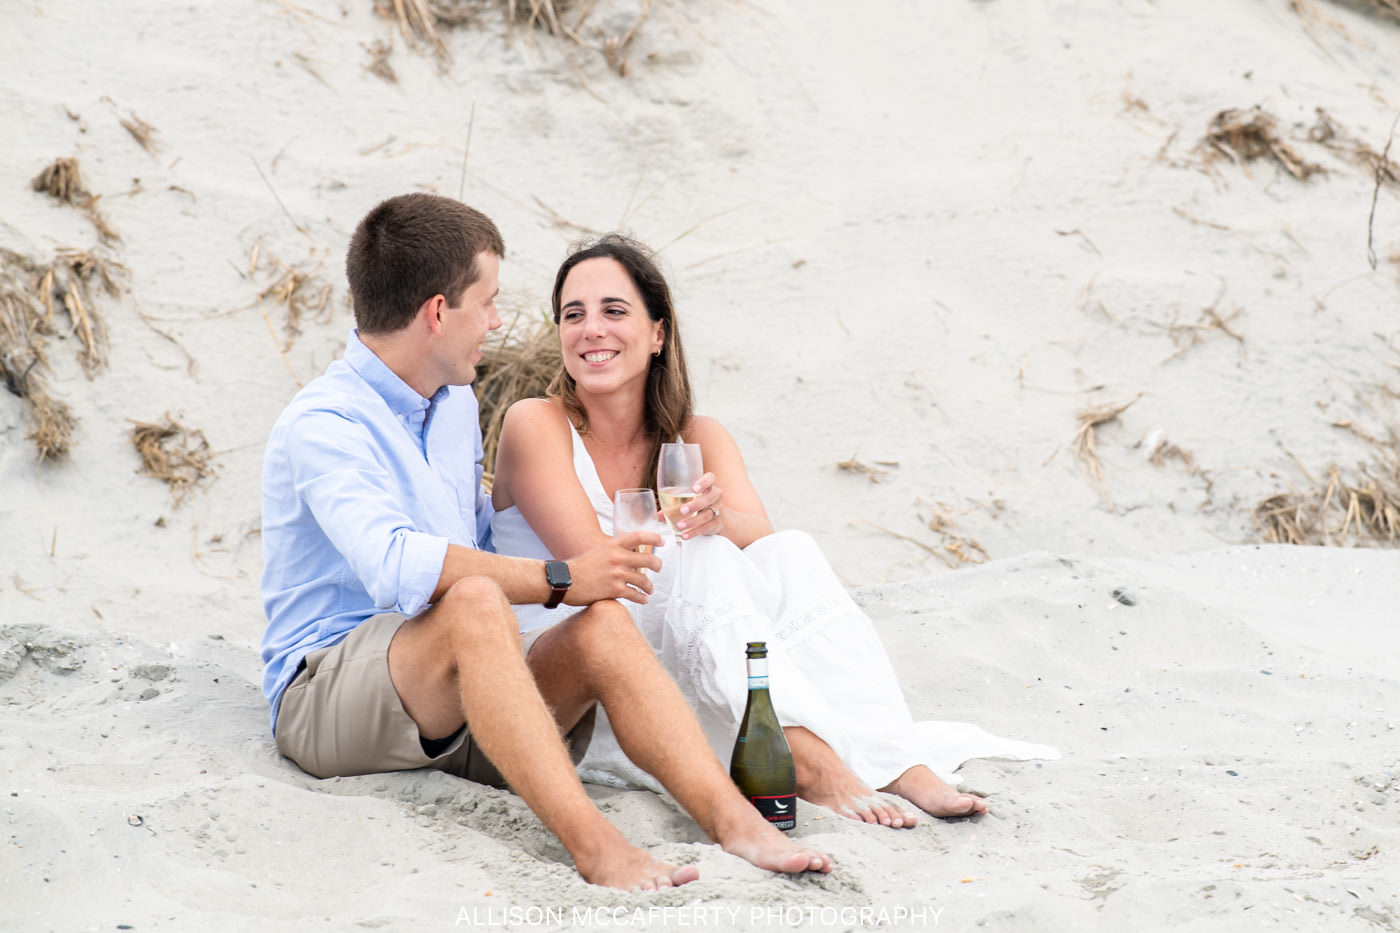 Ocean City NJ Beach Engagement Session